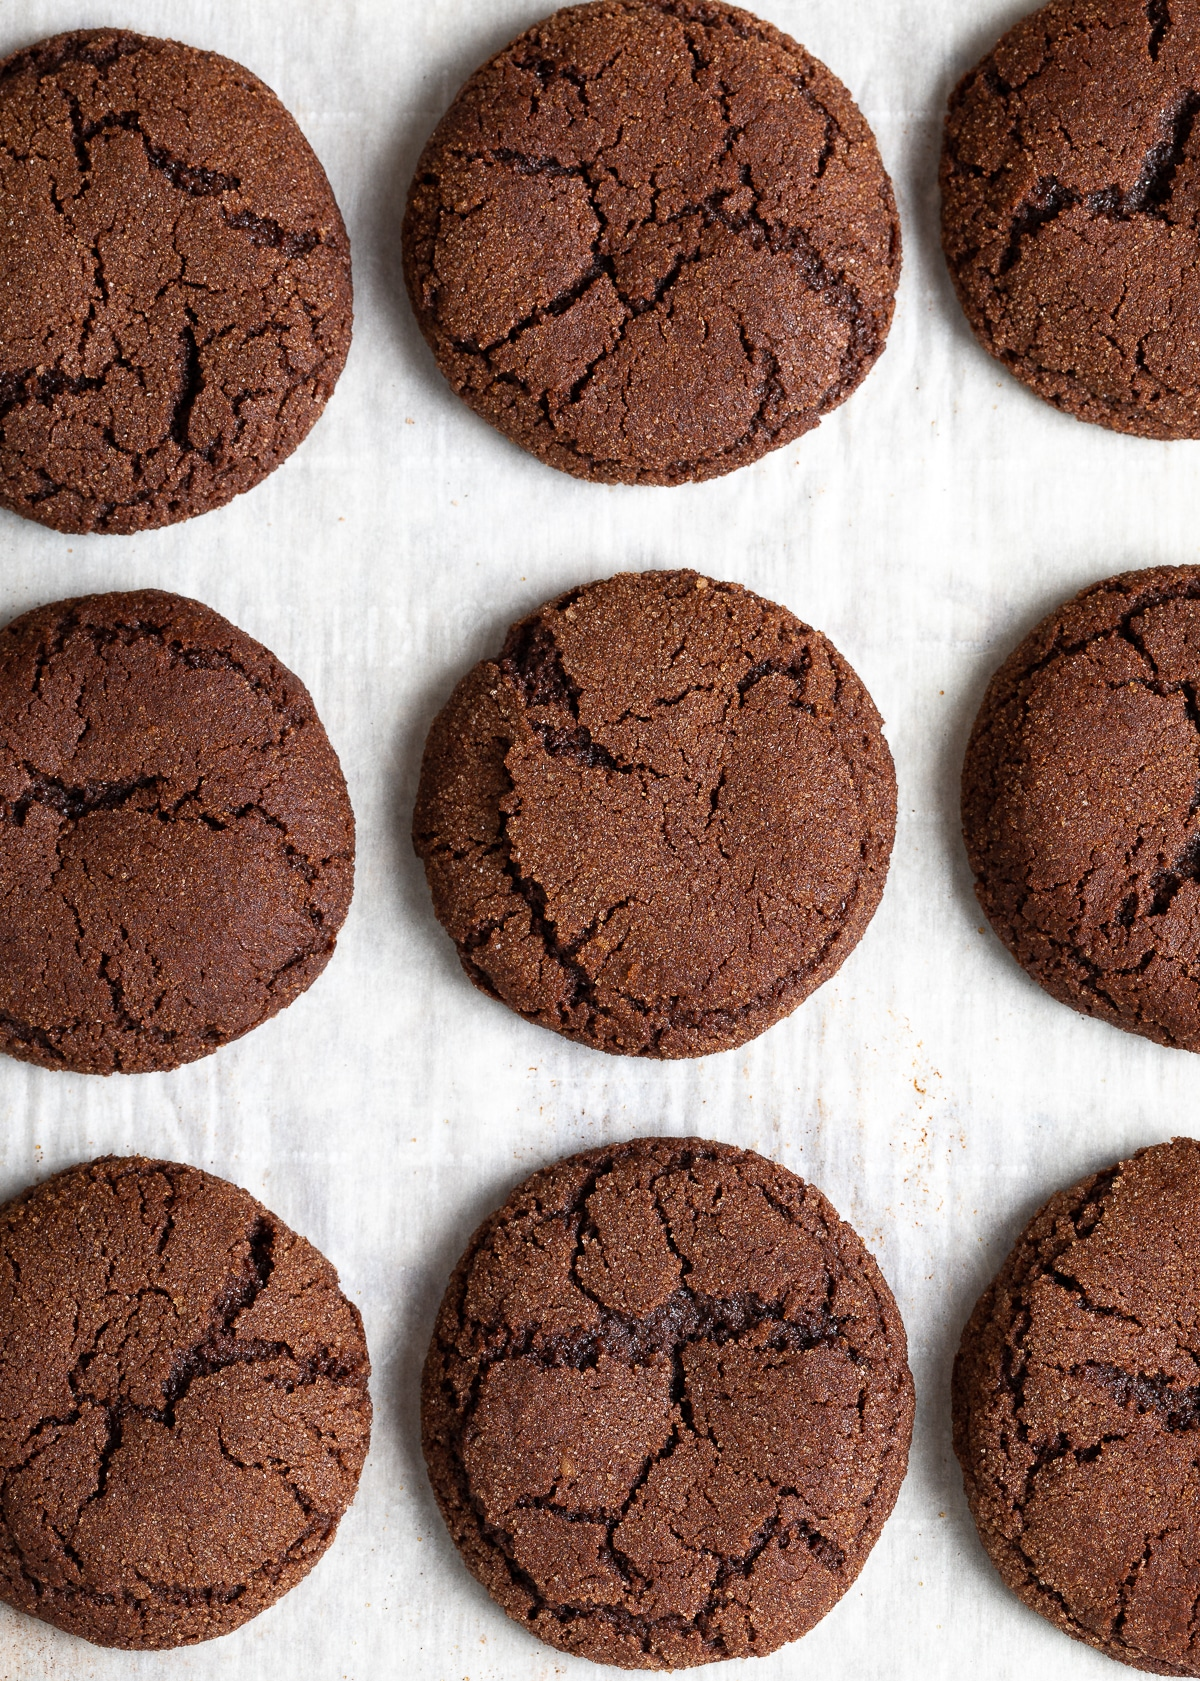 Chocolate Snickerdoodles Recipe Video A Spicy Perspective